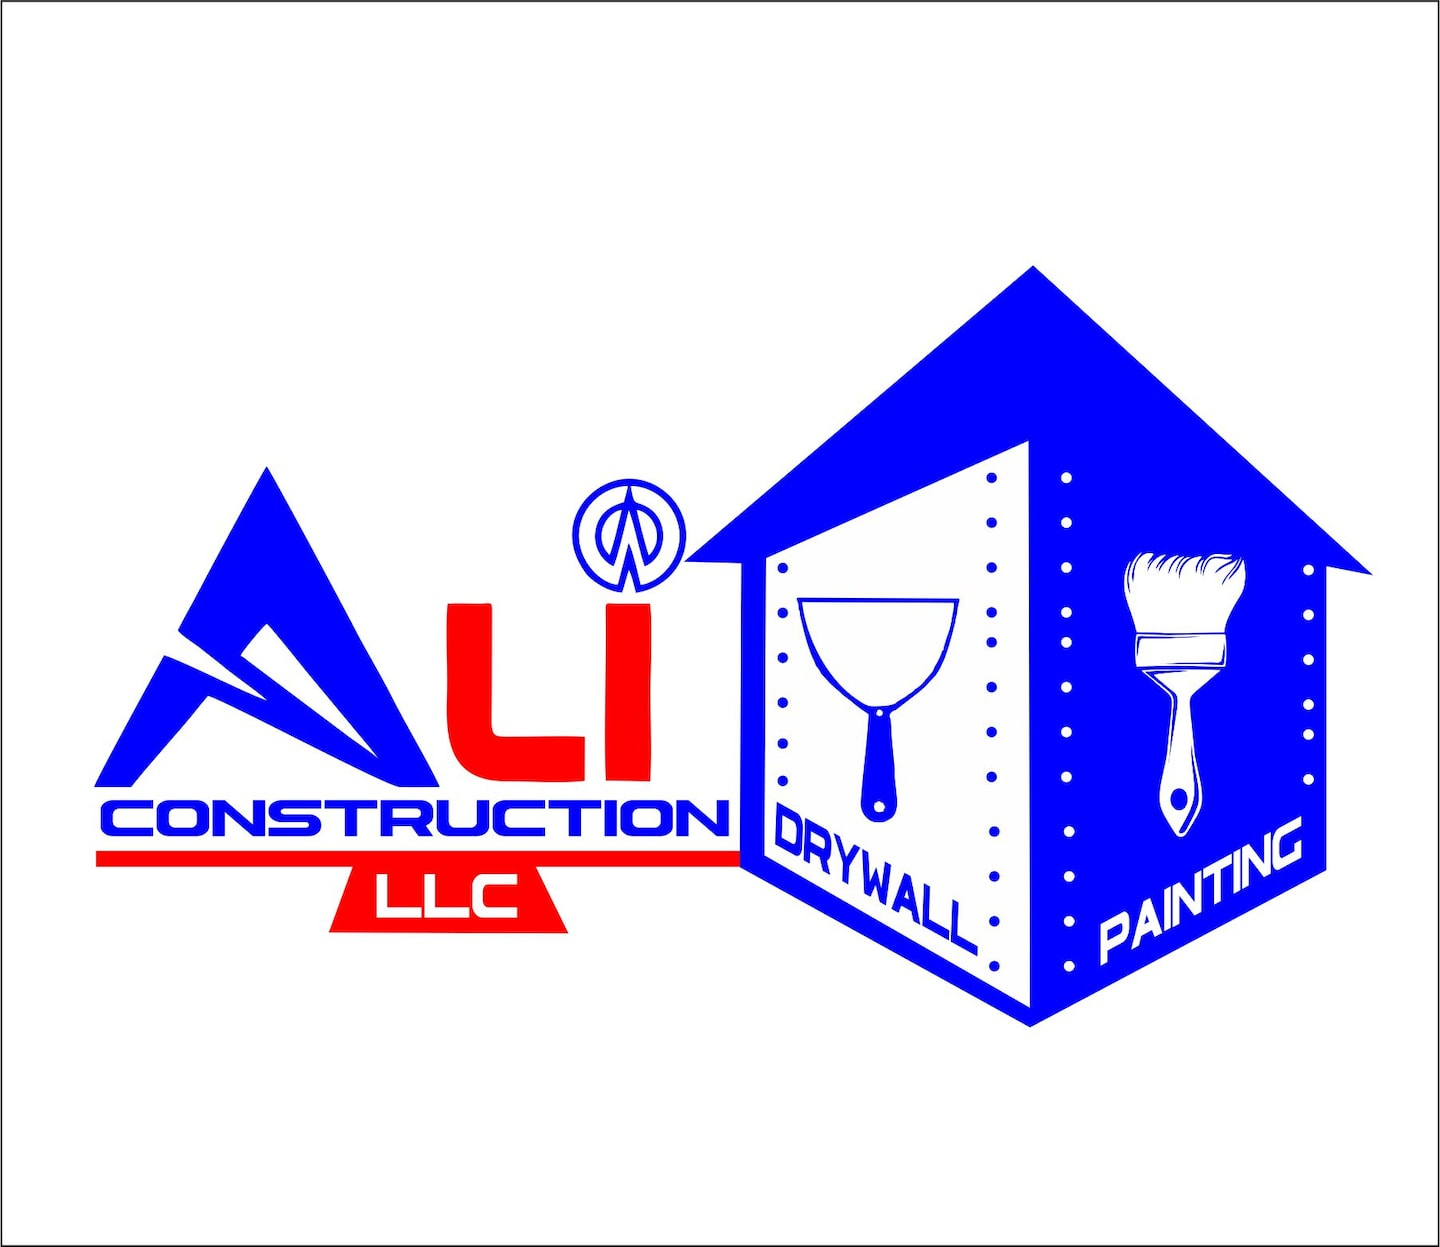 ALI Const. Drywall & Paint